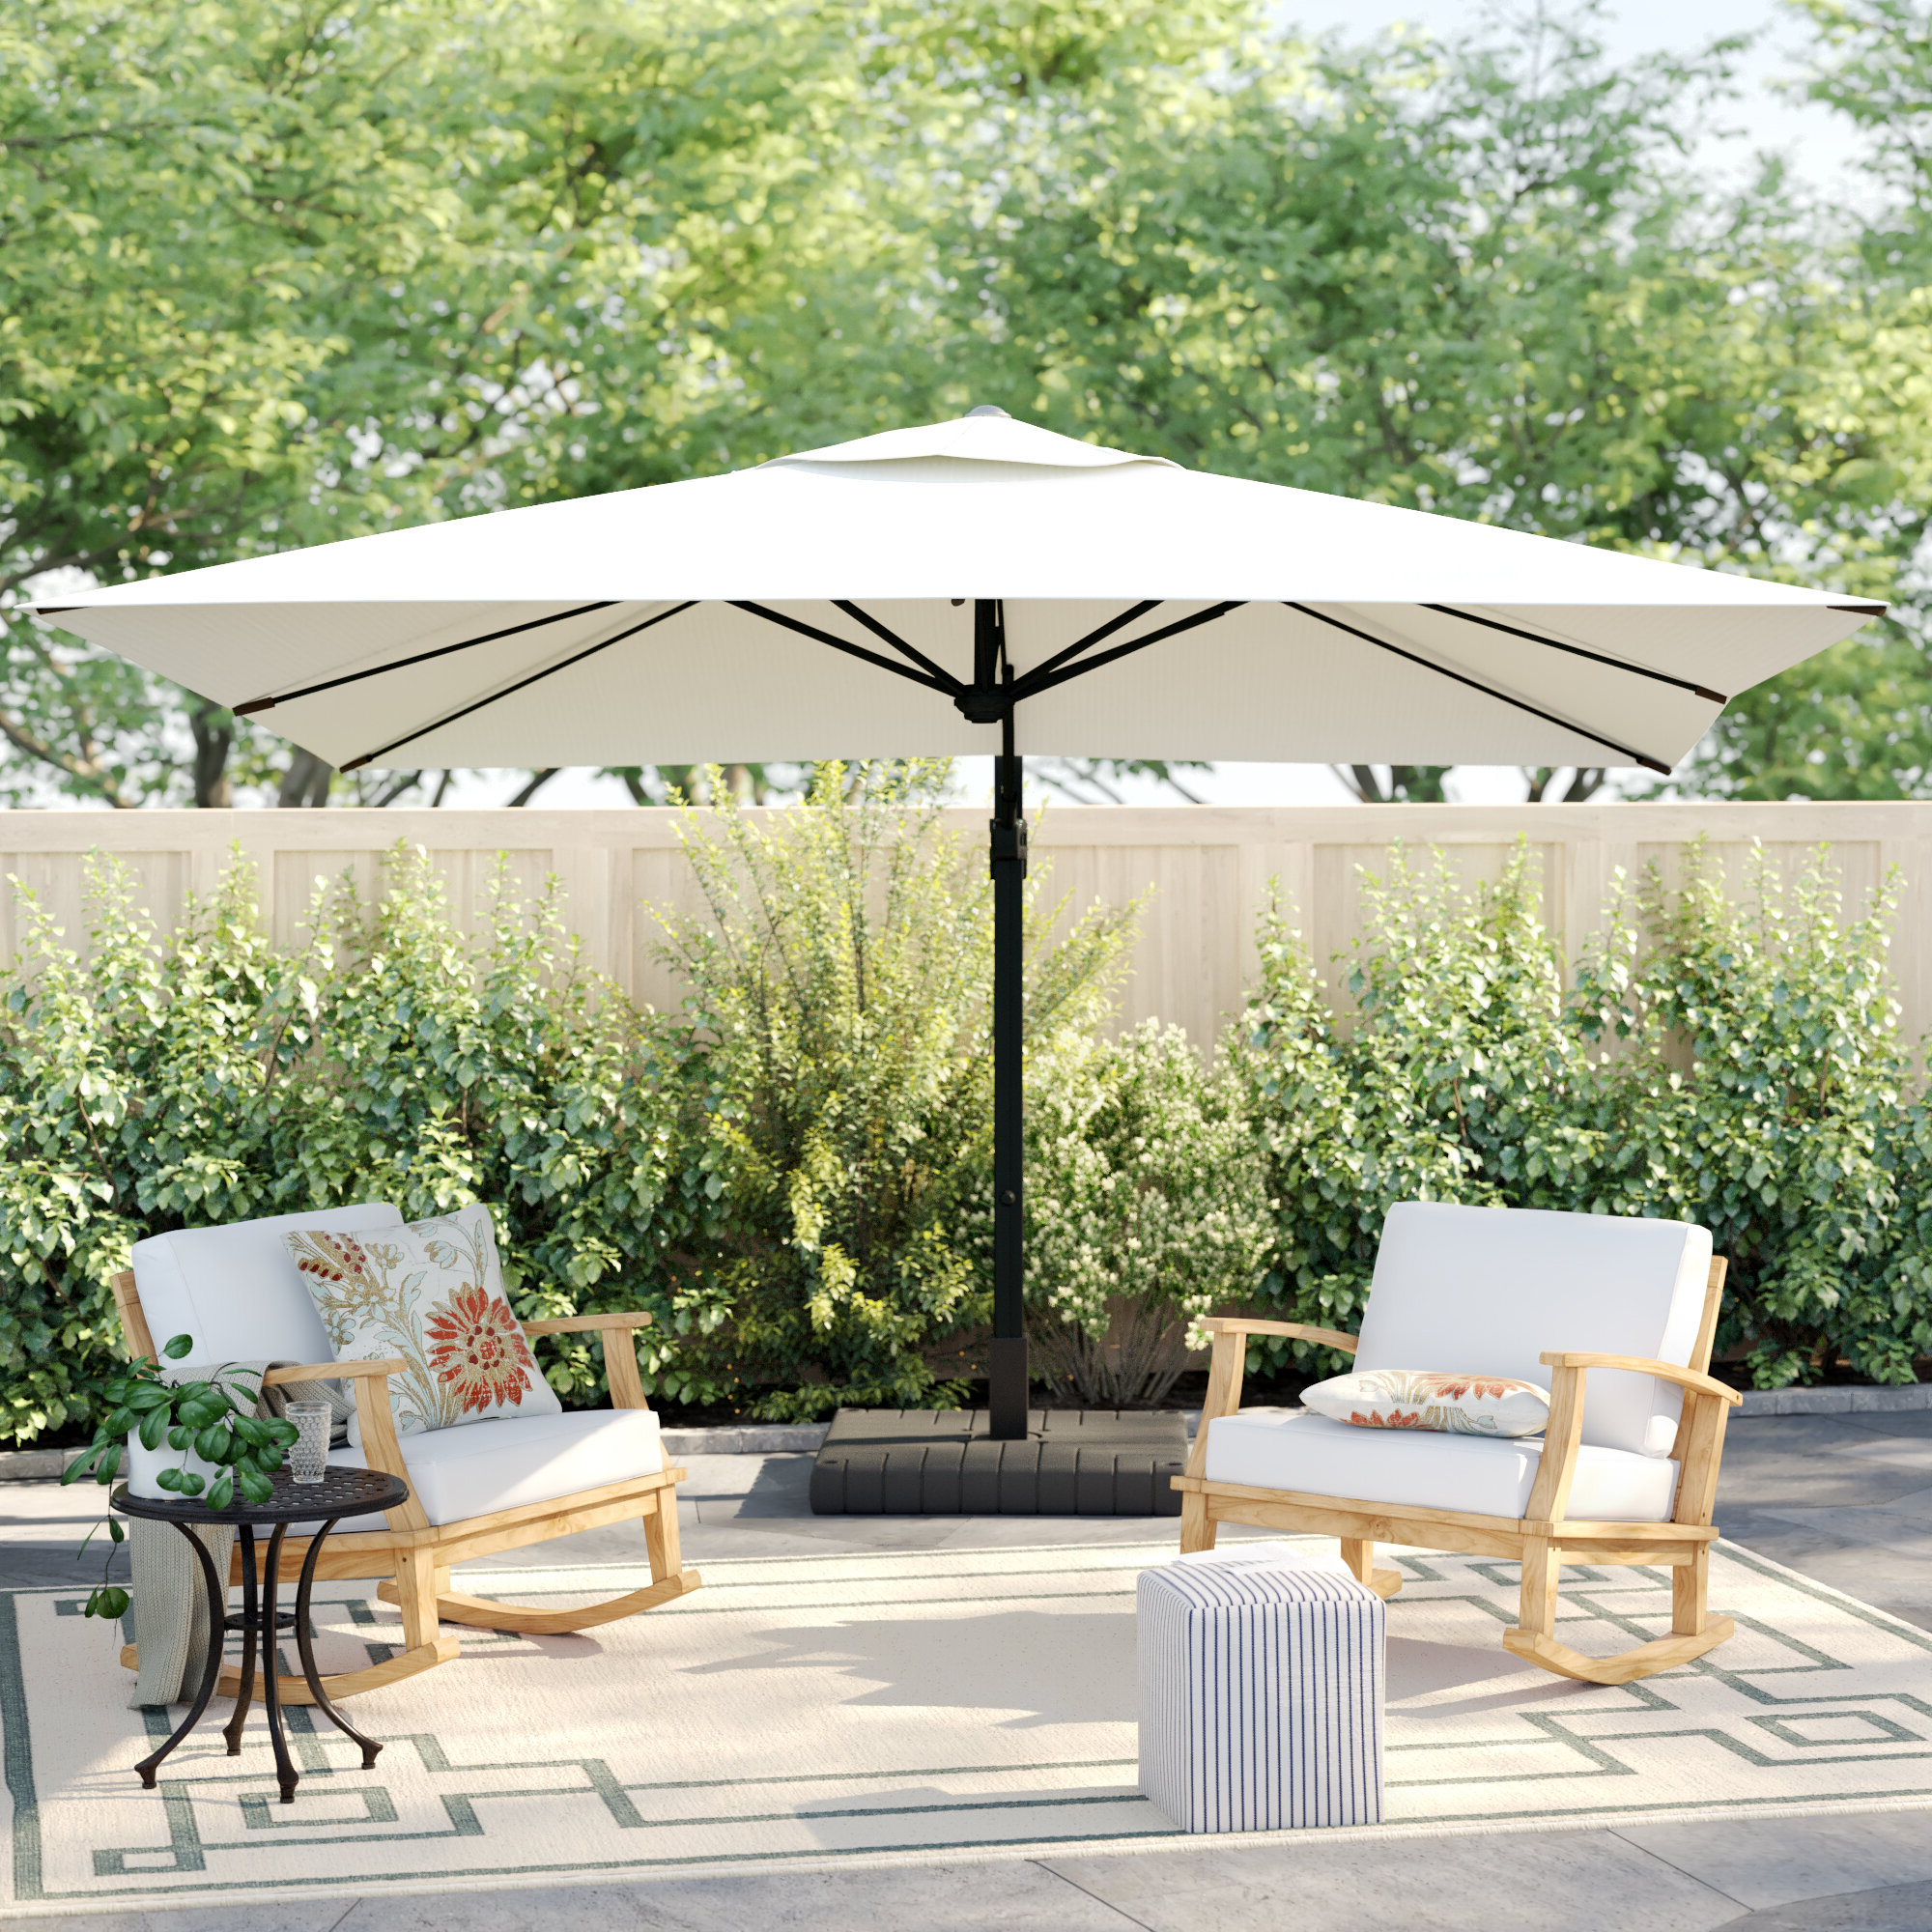 Carlisle Cantilever Sunbrella Umbrellas With Most Popular Carlisle 10' Square Cantilever Sunbrella Umbrella (View 5 of 20)